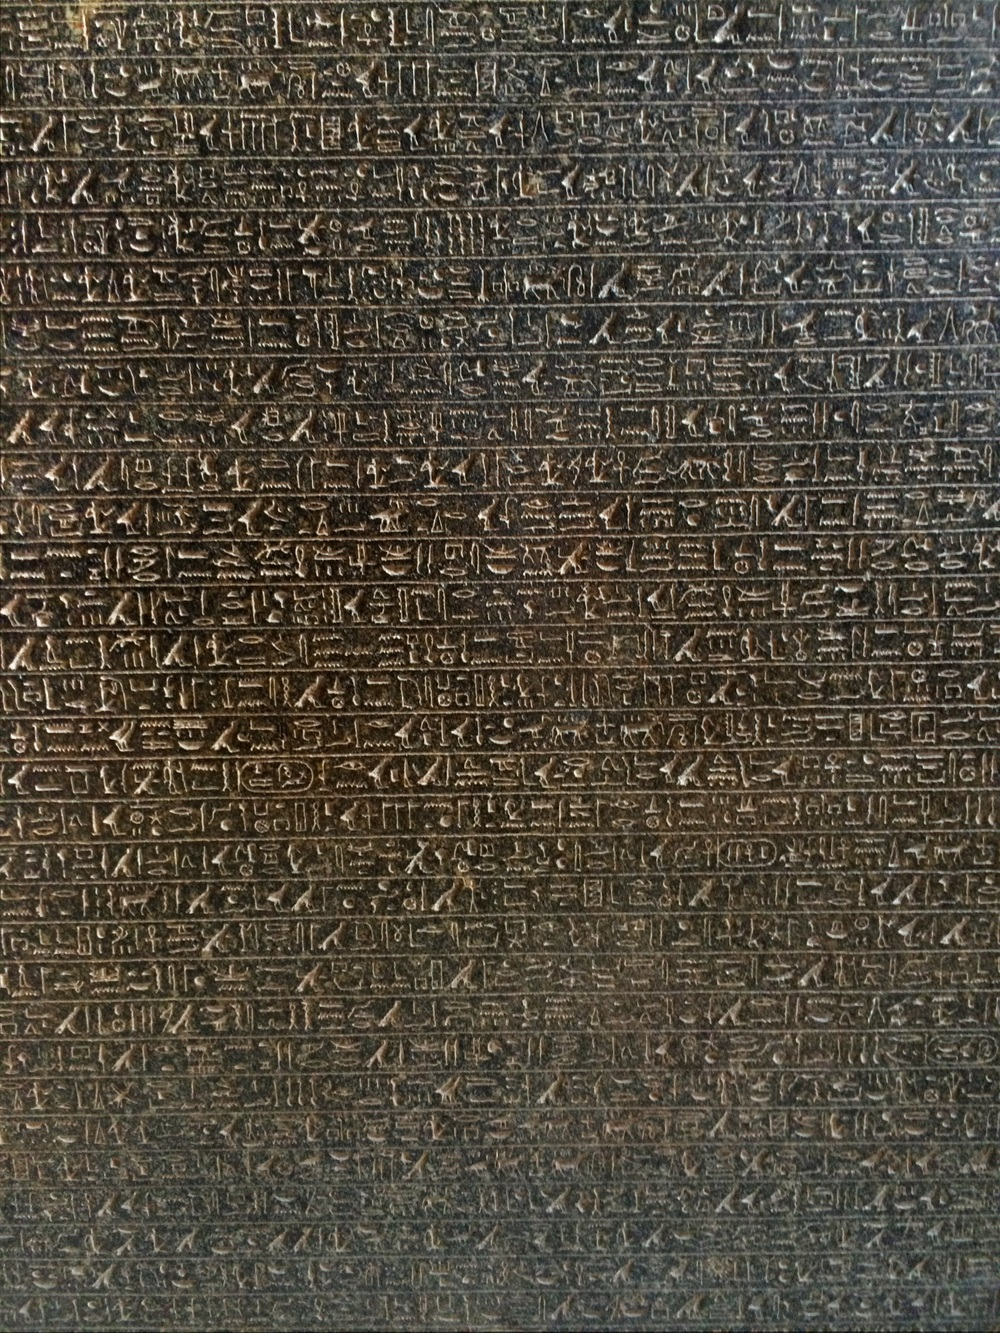 Ancient hieroglyph tablet at the National Museum in Cairo